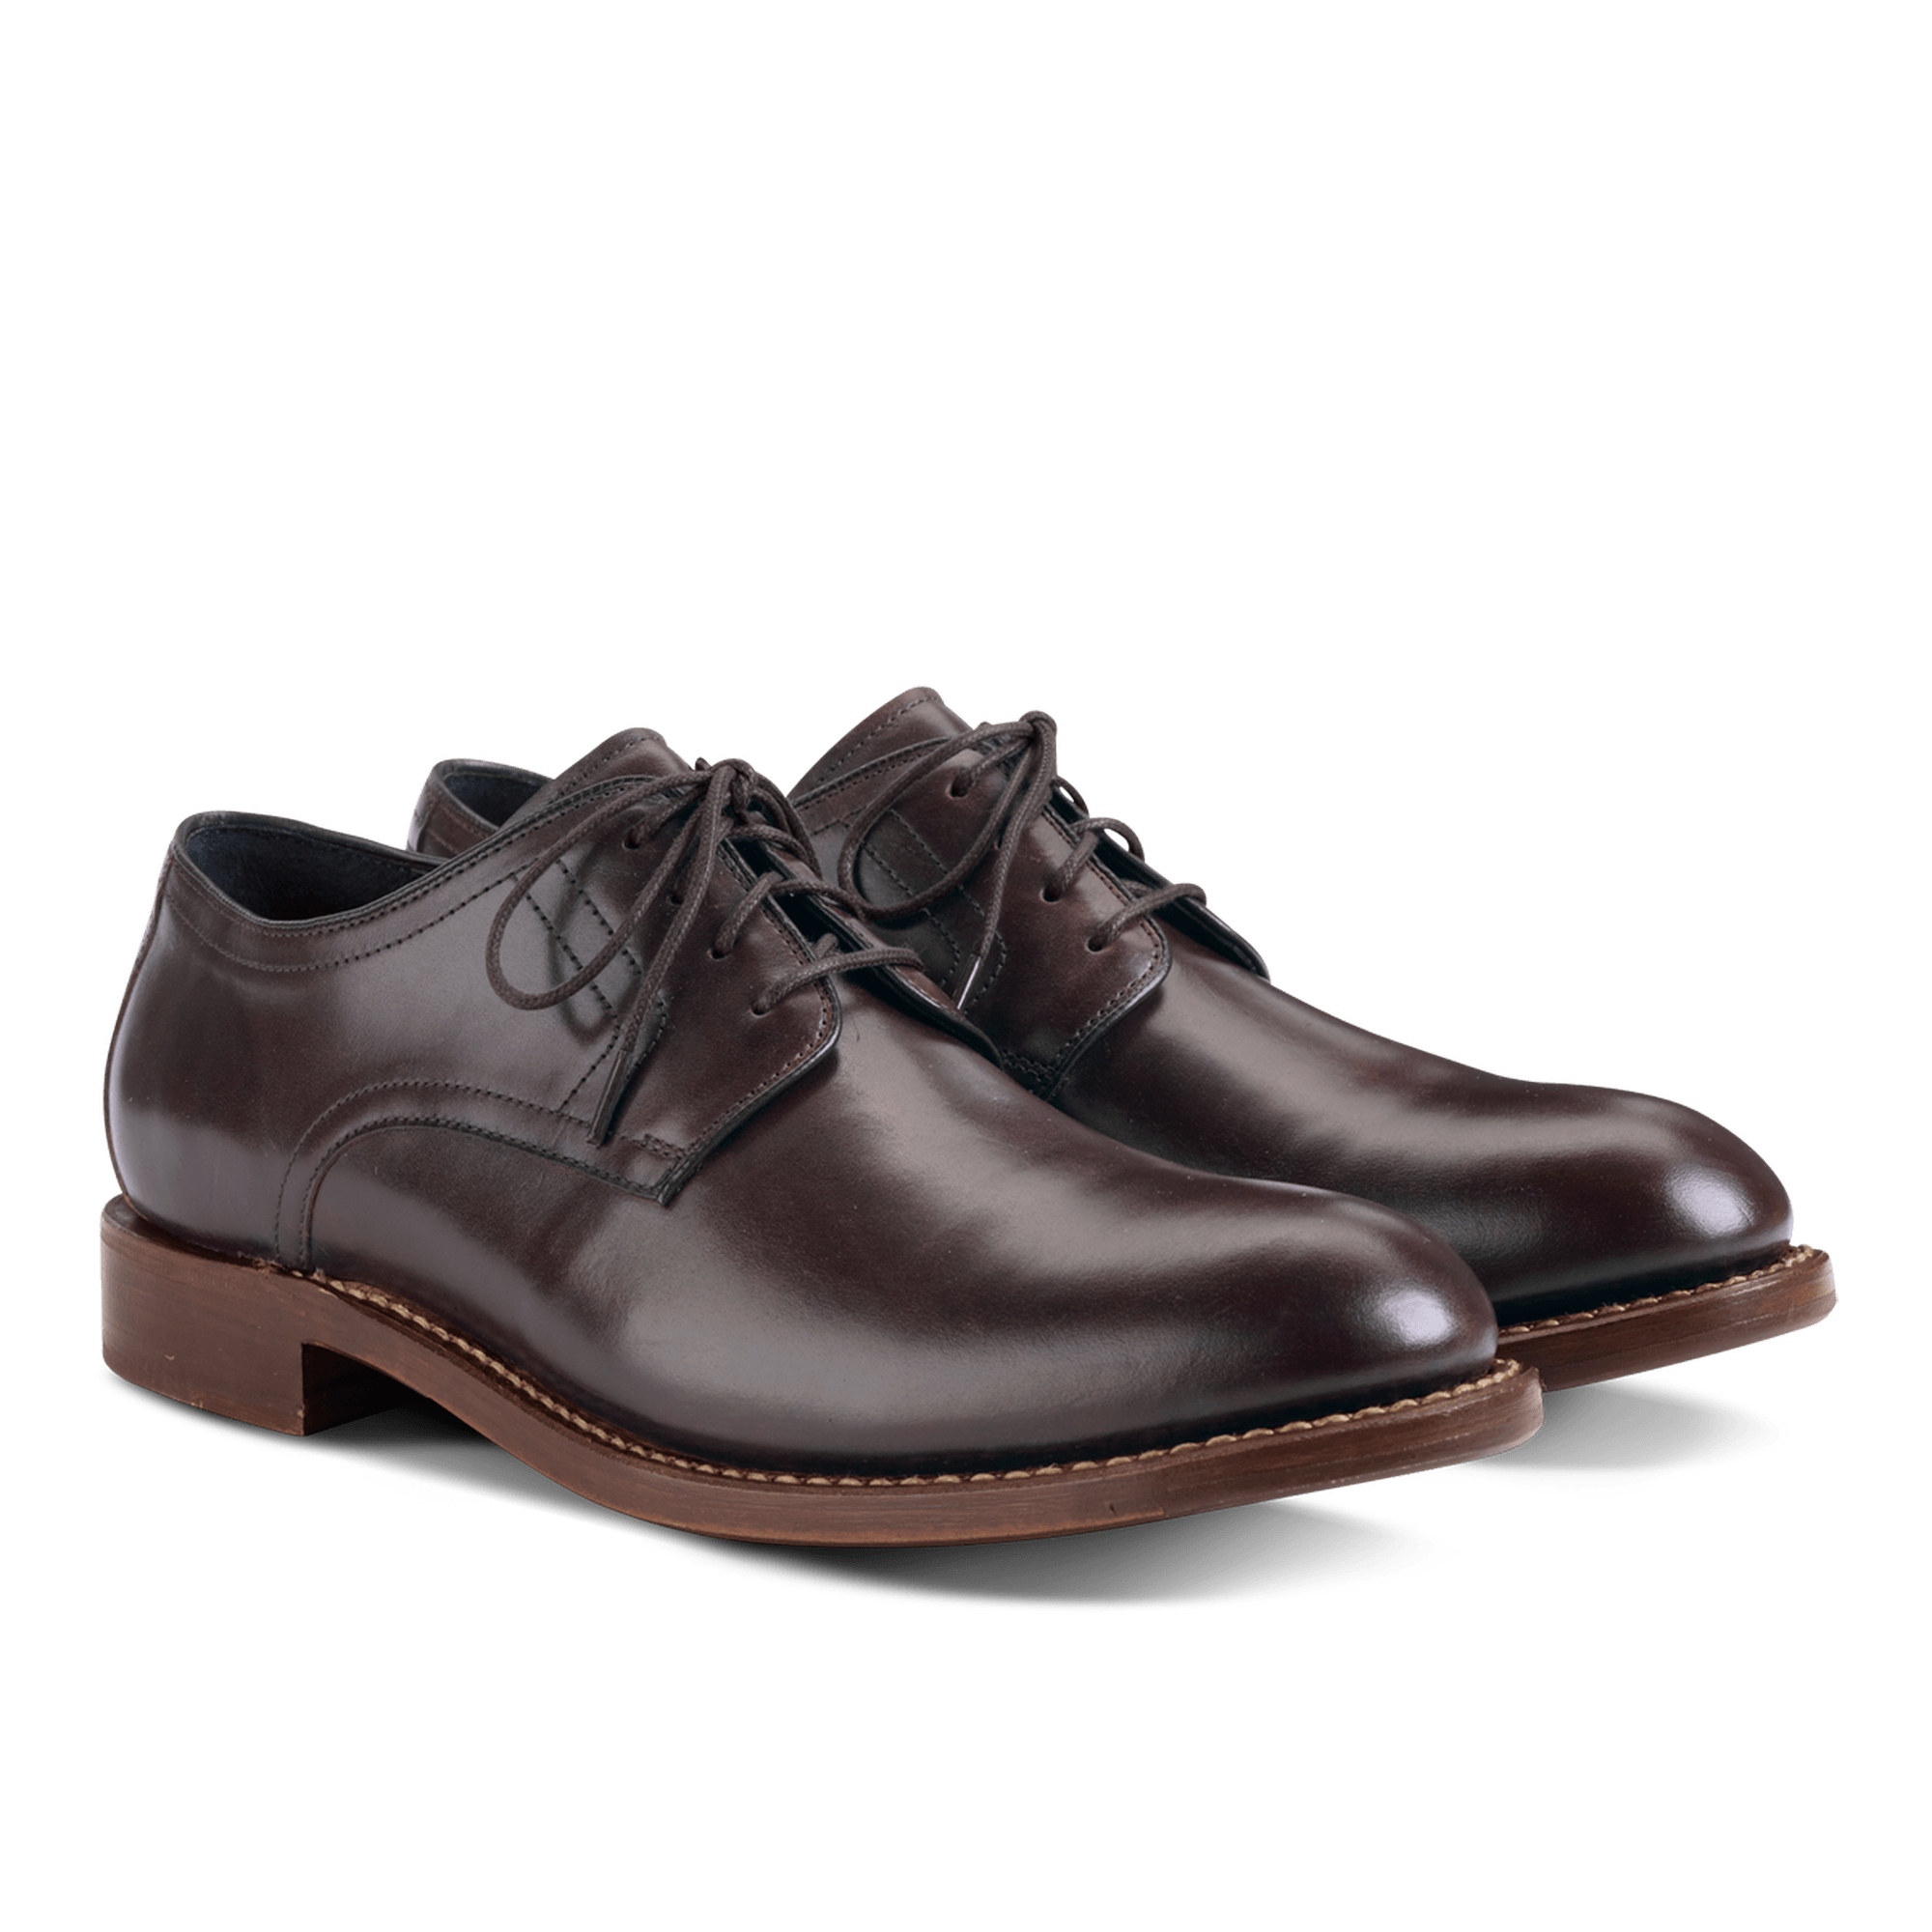 leather shoes png